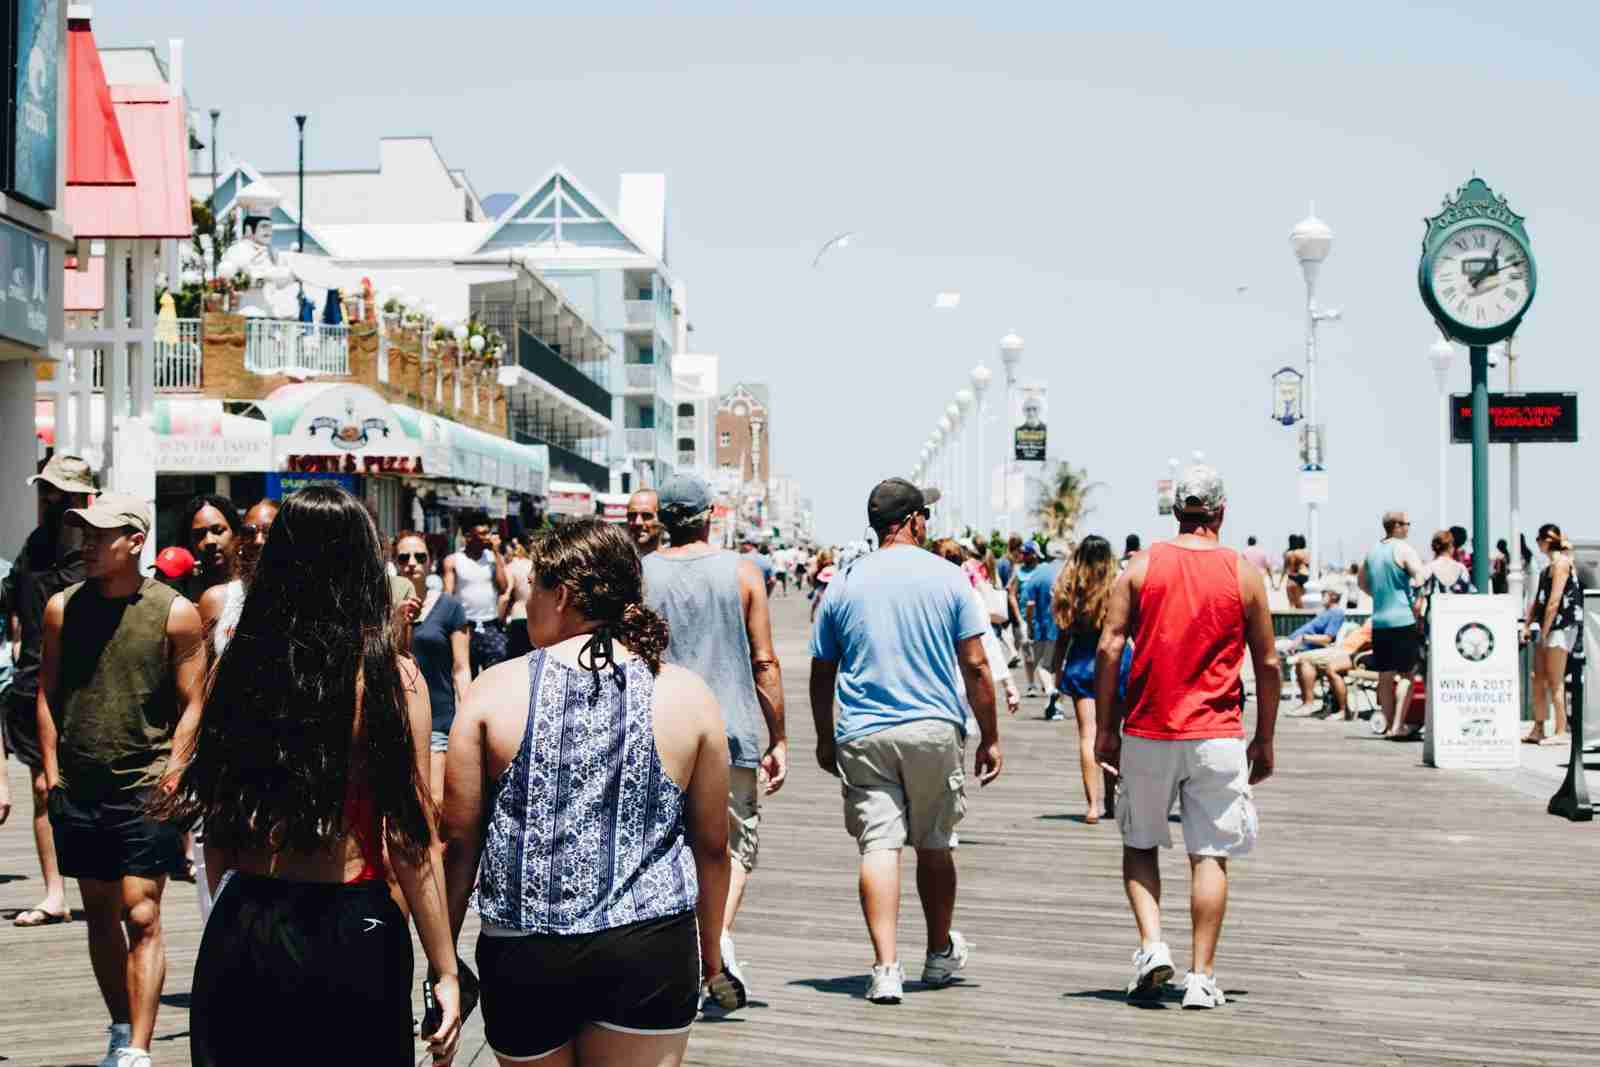 Ocean City Boardwalk in Maryland. (Photo by Oscar Bonilla via Unsplash)